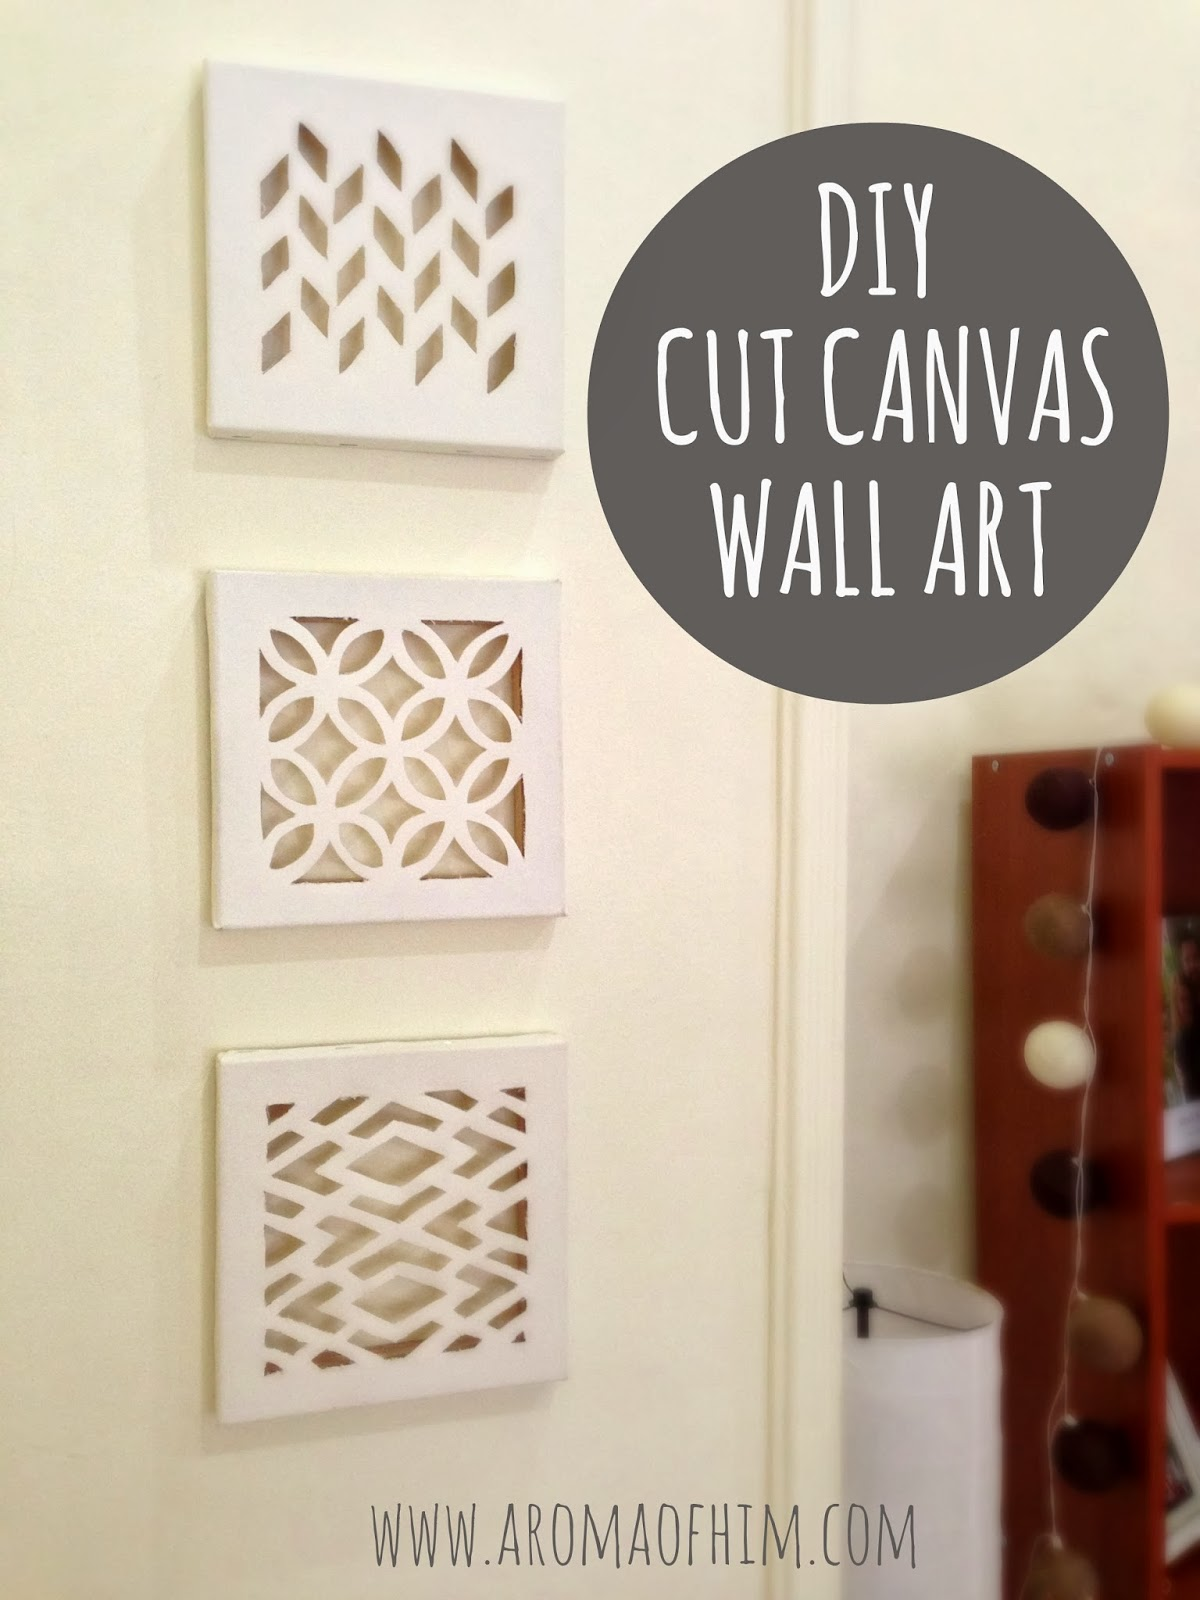 DIY Wall Art Ideas and Do It Yourself Wall Decor for Living Room, Bedroom, Bathroom, Teen Rooms | DIY Cut Canvas Wall Art | Cheap Ideas for Those On A Budget. Paint Awesome Hanging Pictures With These Easy Step By Step Tutorial